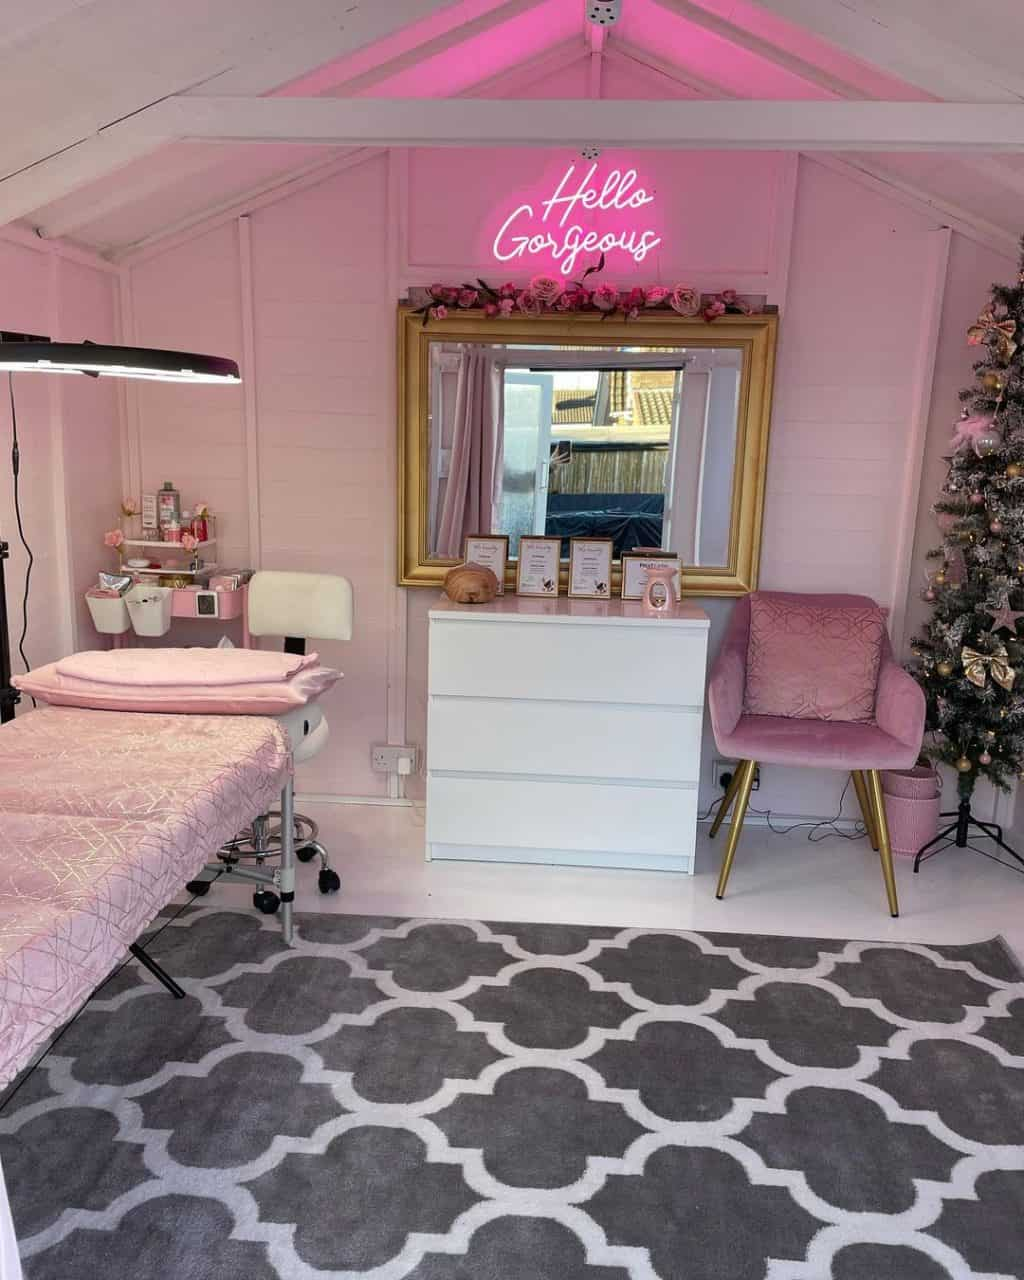 Interior of BillyOh Holly Tongue and Groove Apex Timber Summerhouse home salon with bed, chair, chest of drawers, rug, and pink neon sign